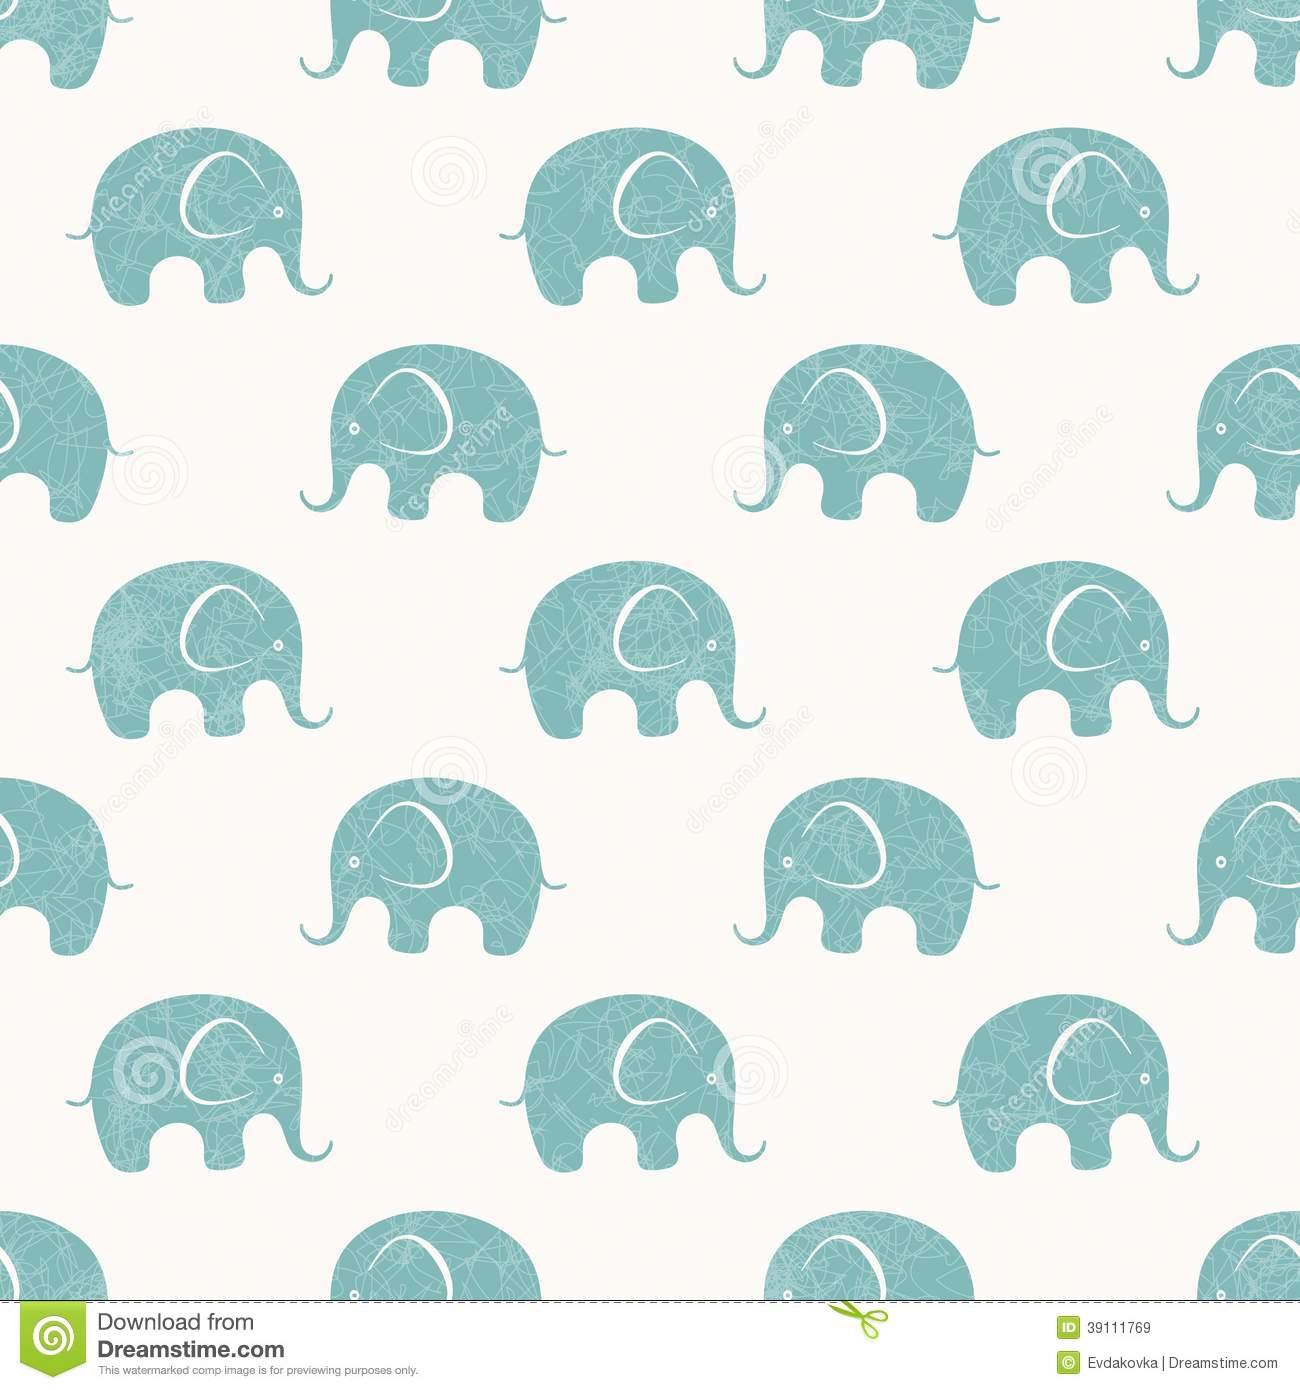 Cute Elephant Cartoon Wallpapers Seamless Vector Print With Cute Little Elephants Stock